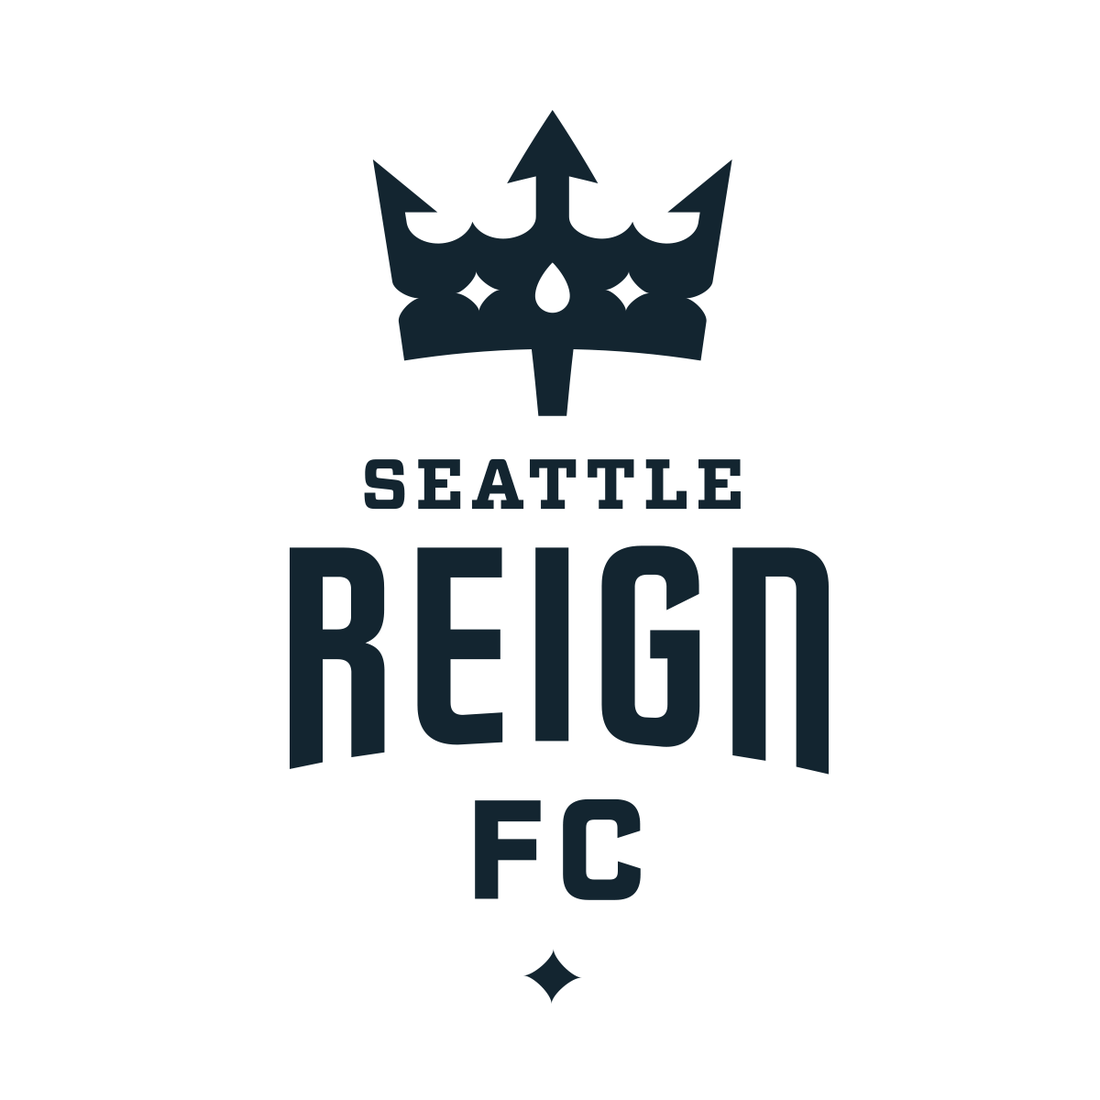 Seattle's NWSL team will be named Seattle Reign FC - Sounder At Heart